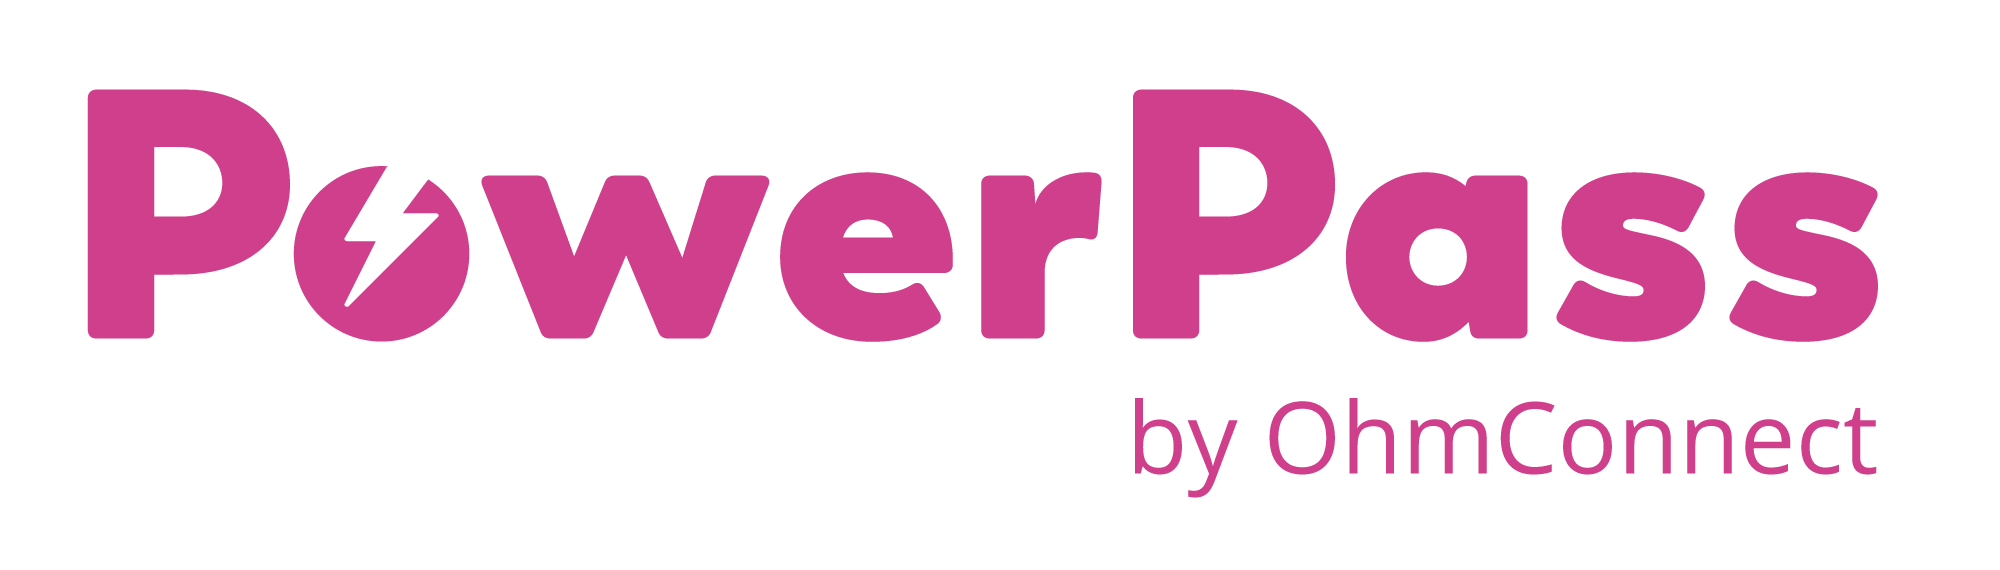 power pass logo magenta